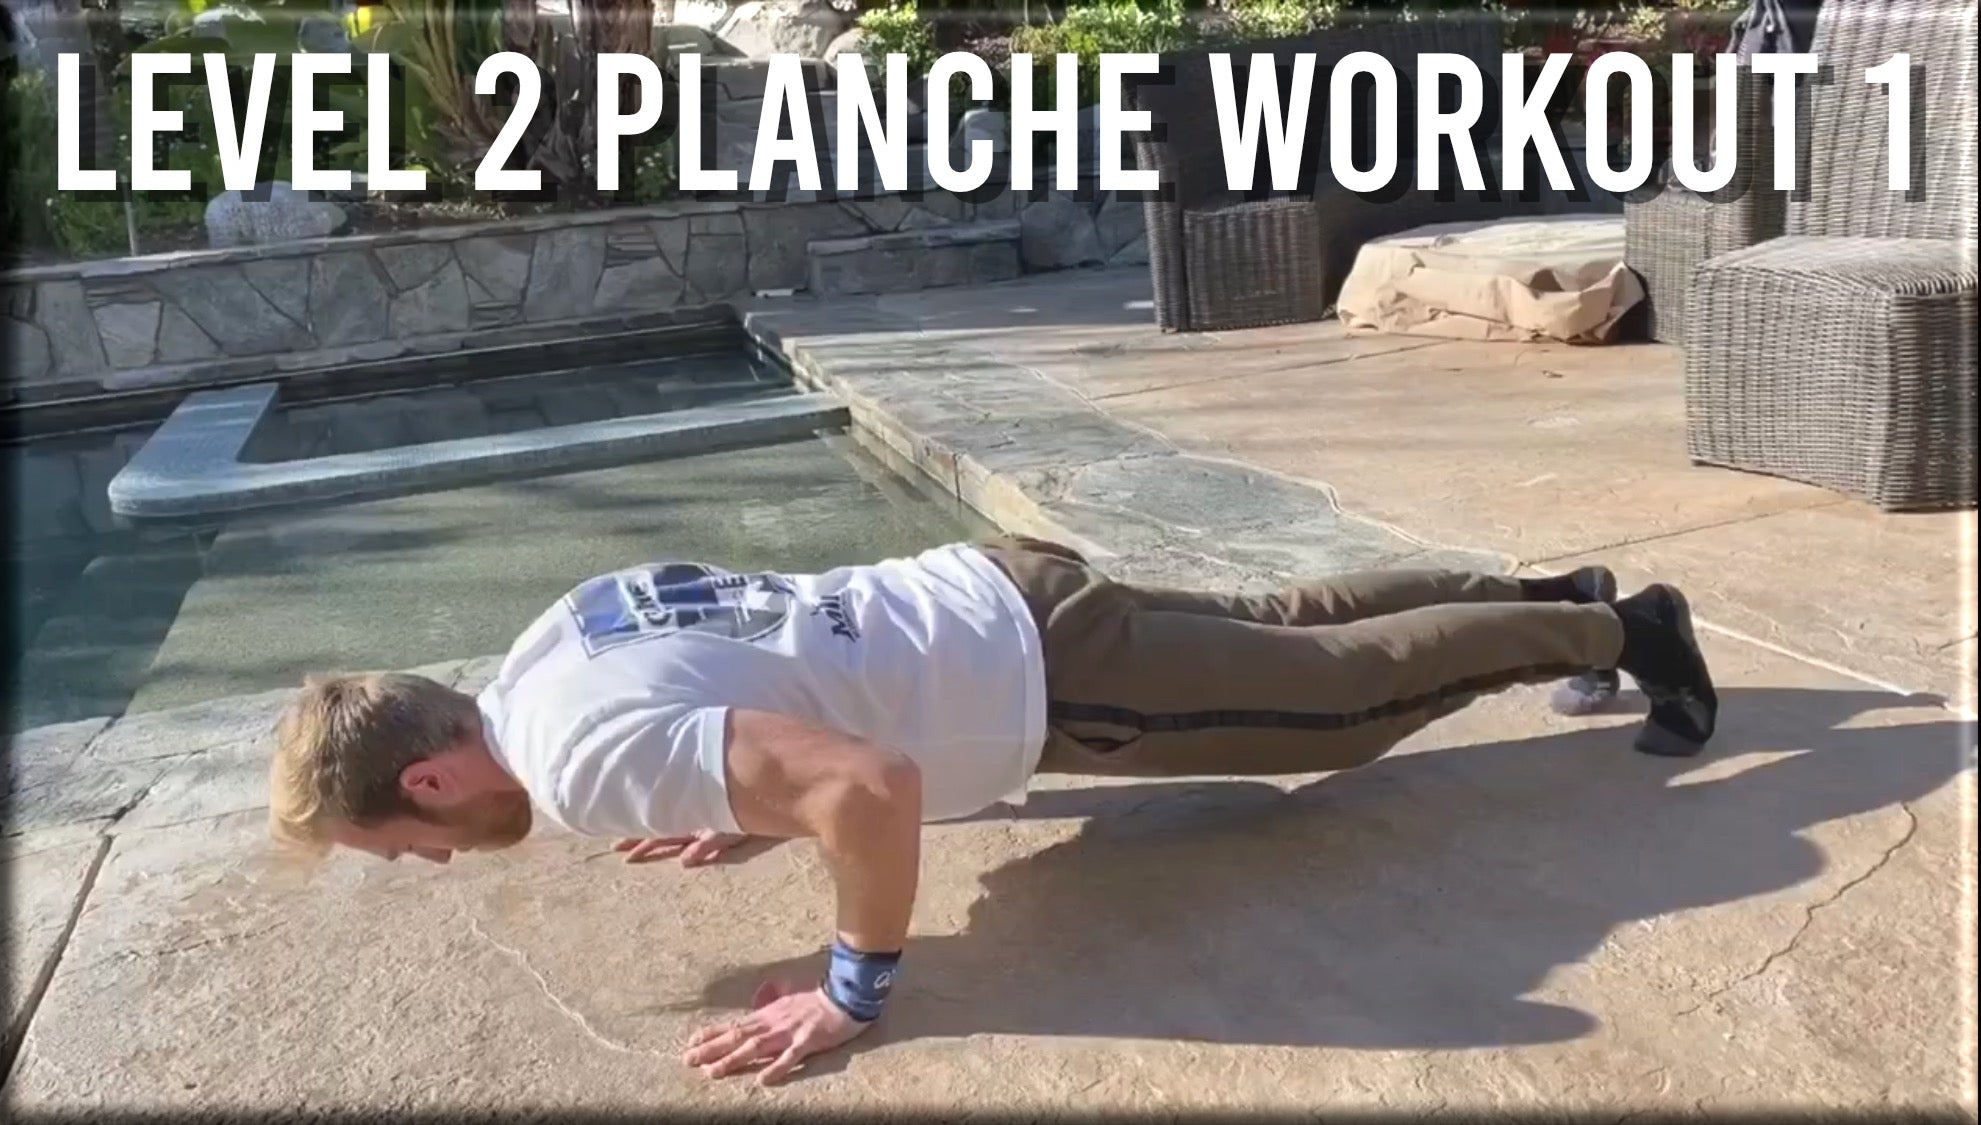 Level 2 Planche Workout 1